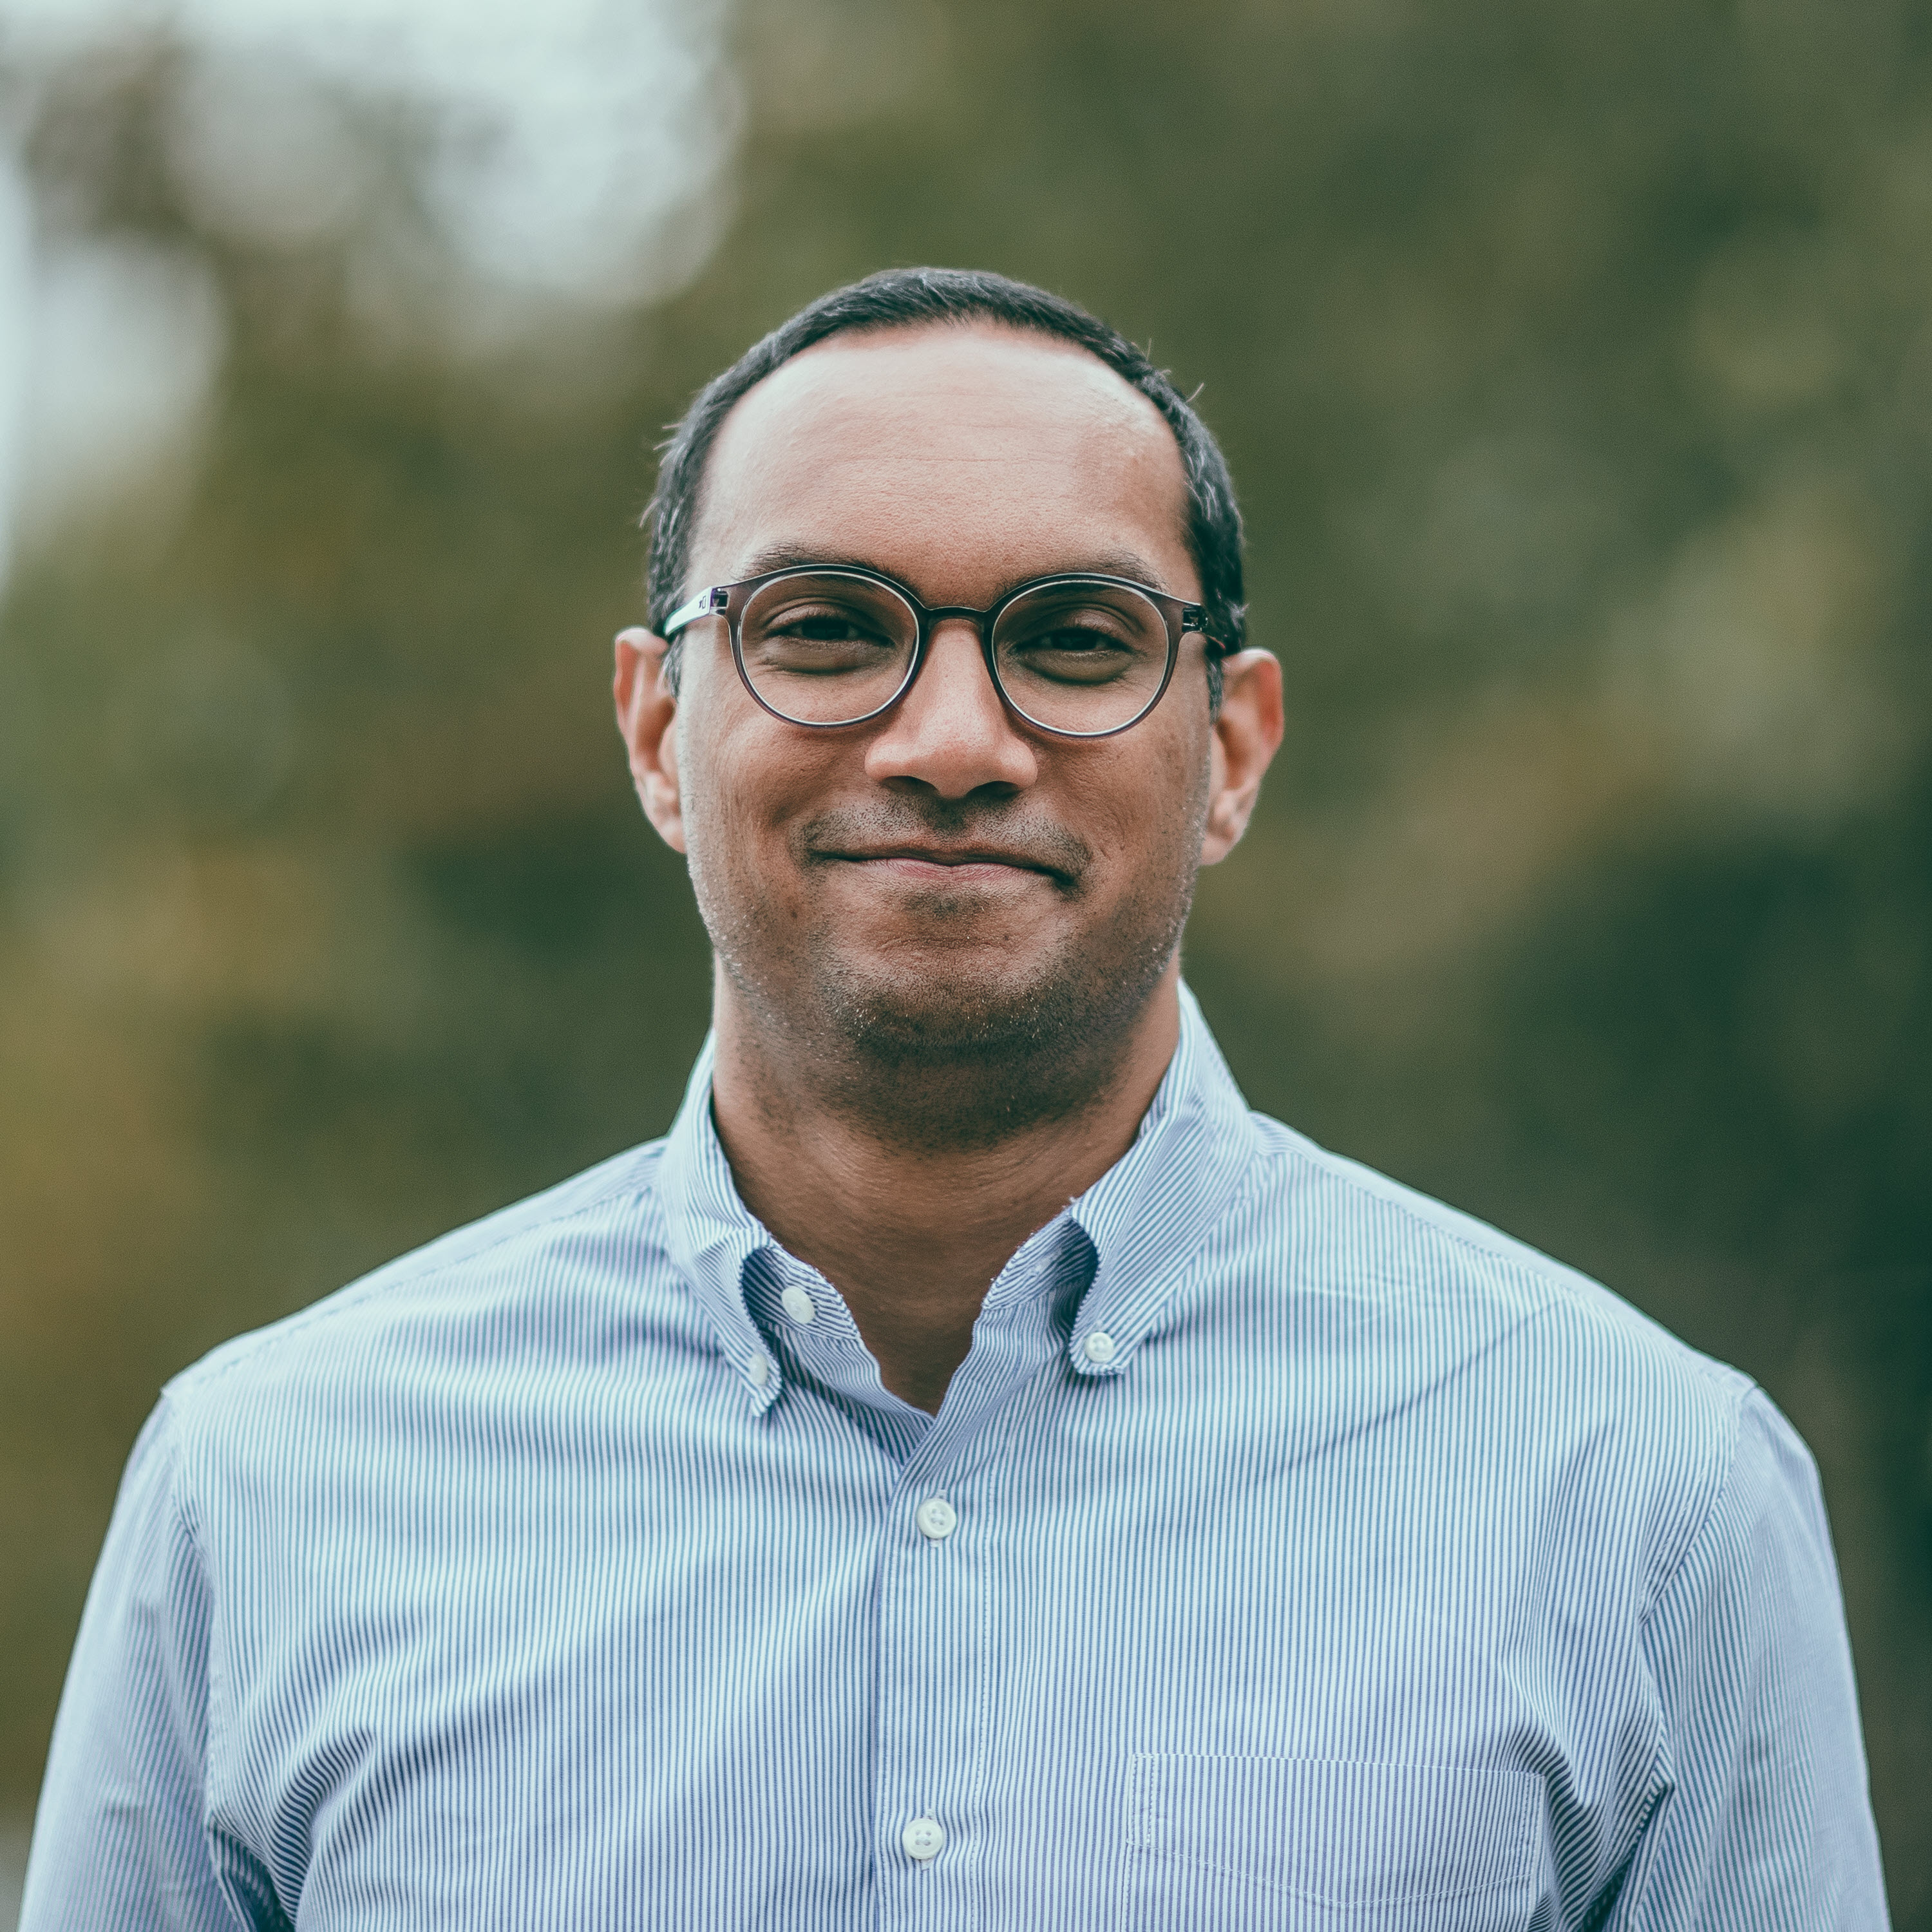 Profile image of Chaz Perera, the CEO and co-founder of Roots Automation.